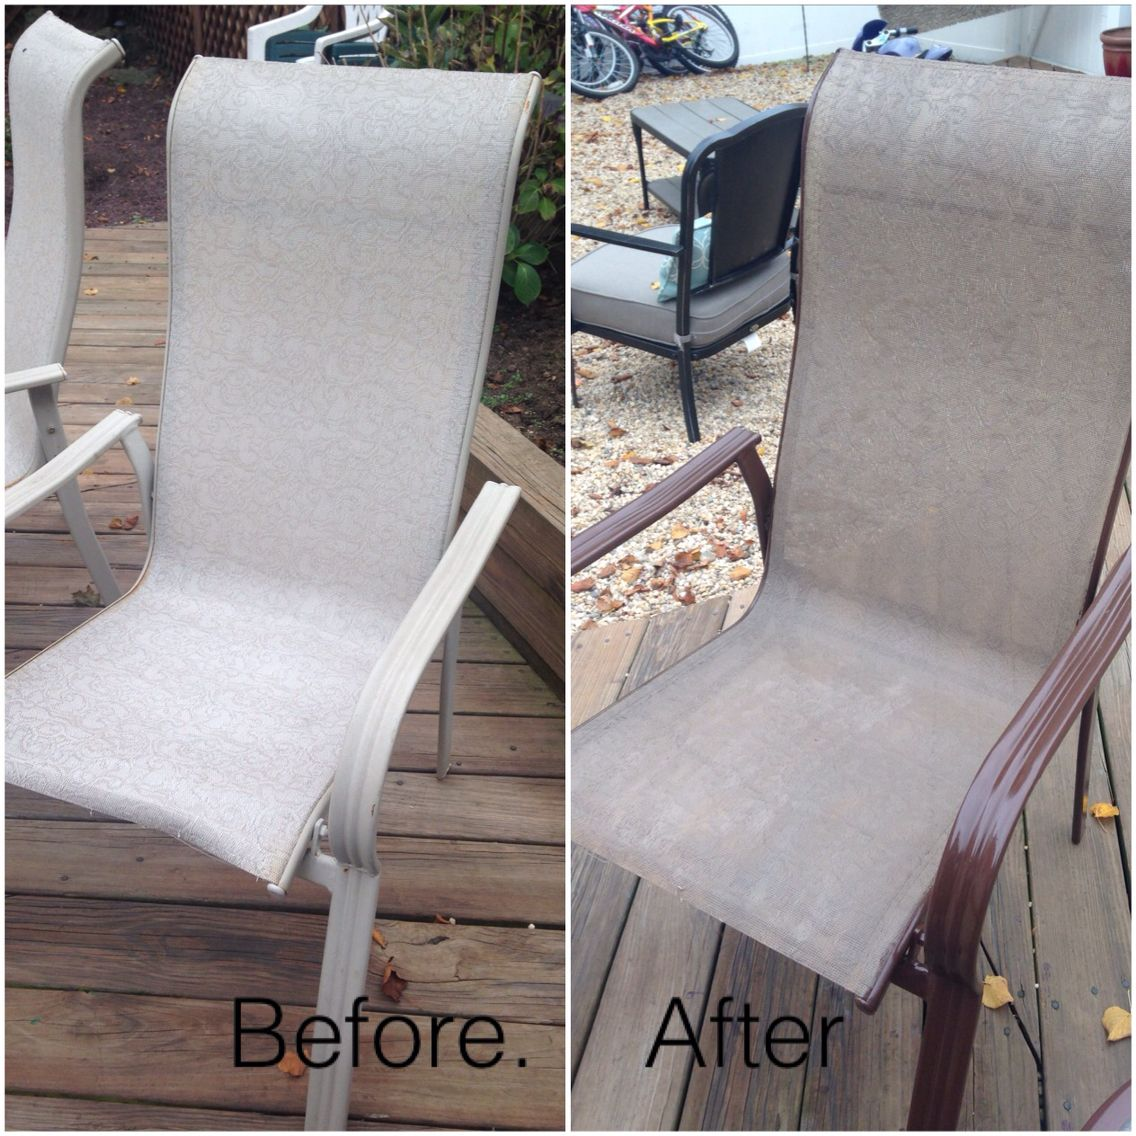 Redo Sling Patio Chairs Folding Portable High Chair Old Furniture No Problem Spray Paint Fabric